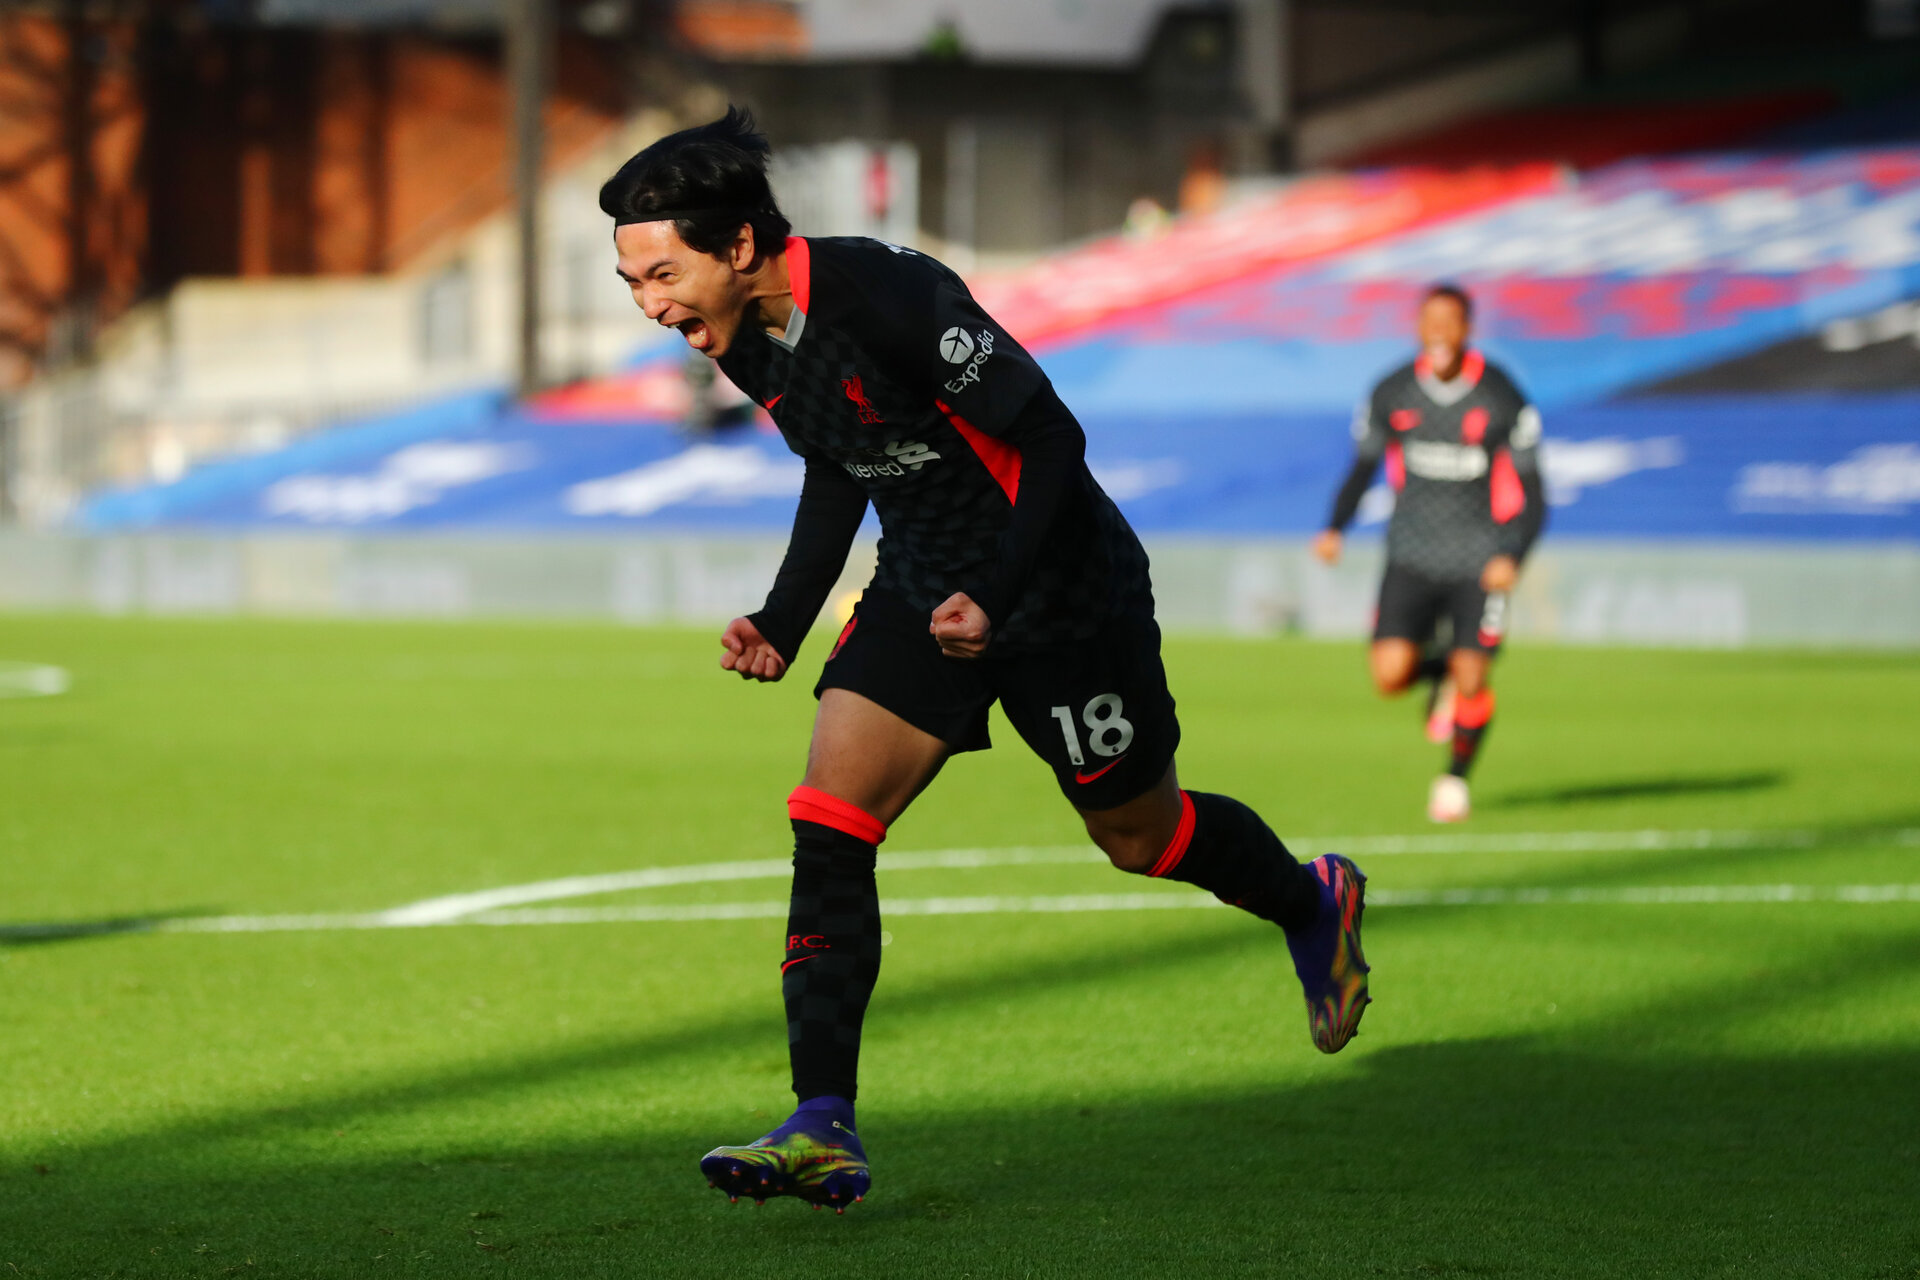 LONDON, ENGLAND - DECEMBER 19:  Takumi Minamino of Liverpool celebrates after scoring their sides first goal during the Premier League match between Crystal Palace and Liverpool at Selhurst Park on December 19, 2020 in London, England. The match will be played without fans, behind closed doors as a Covid-19 precaution. (Photo by Clive Rose/Getty Images)